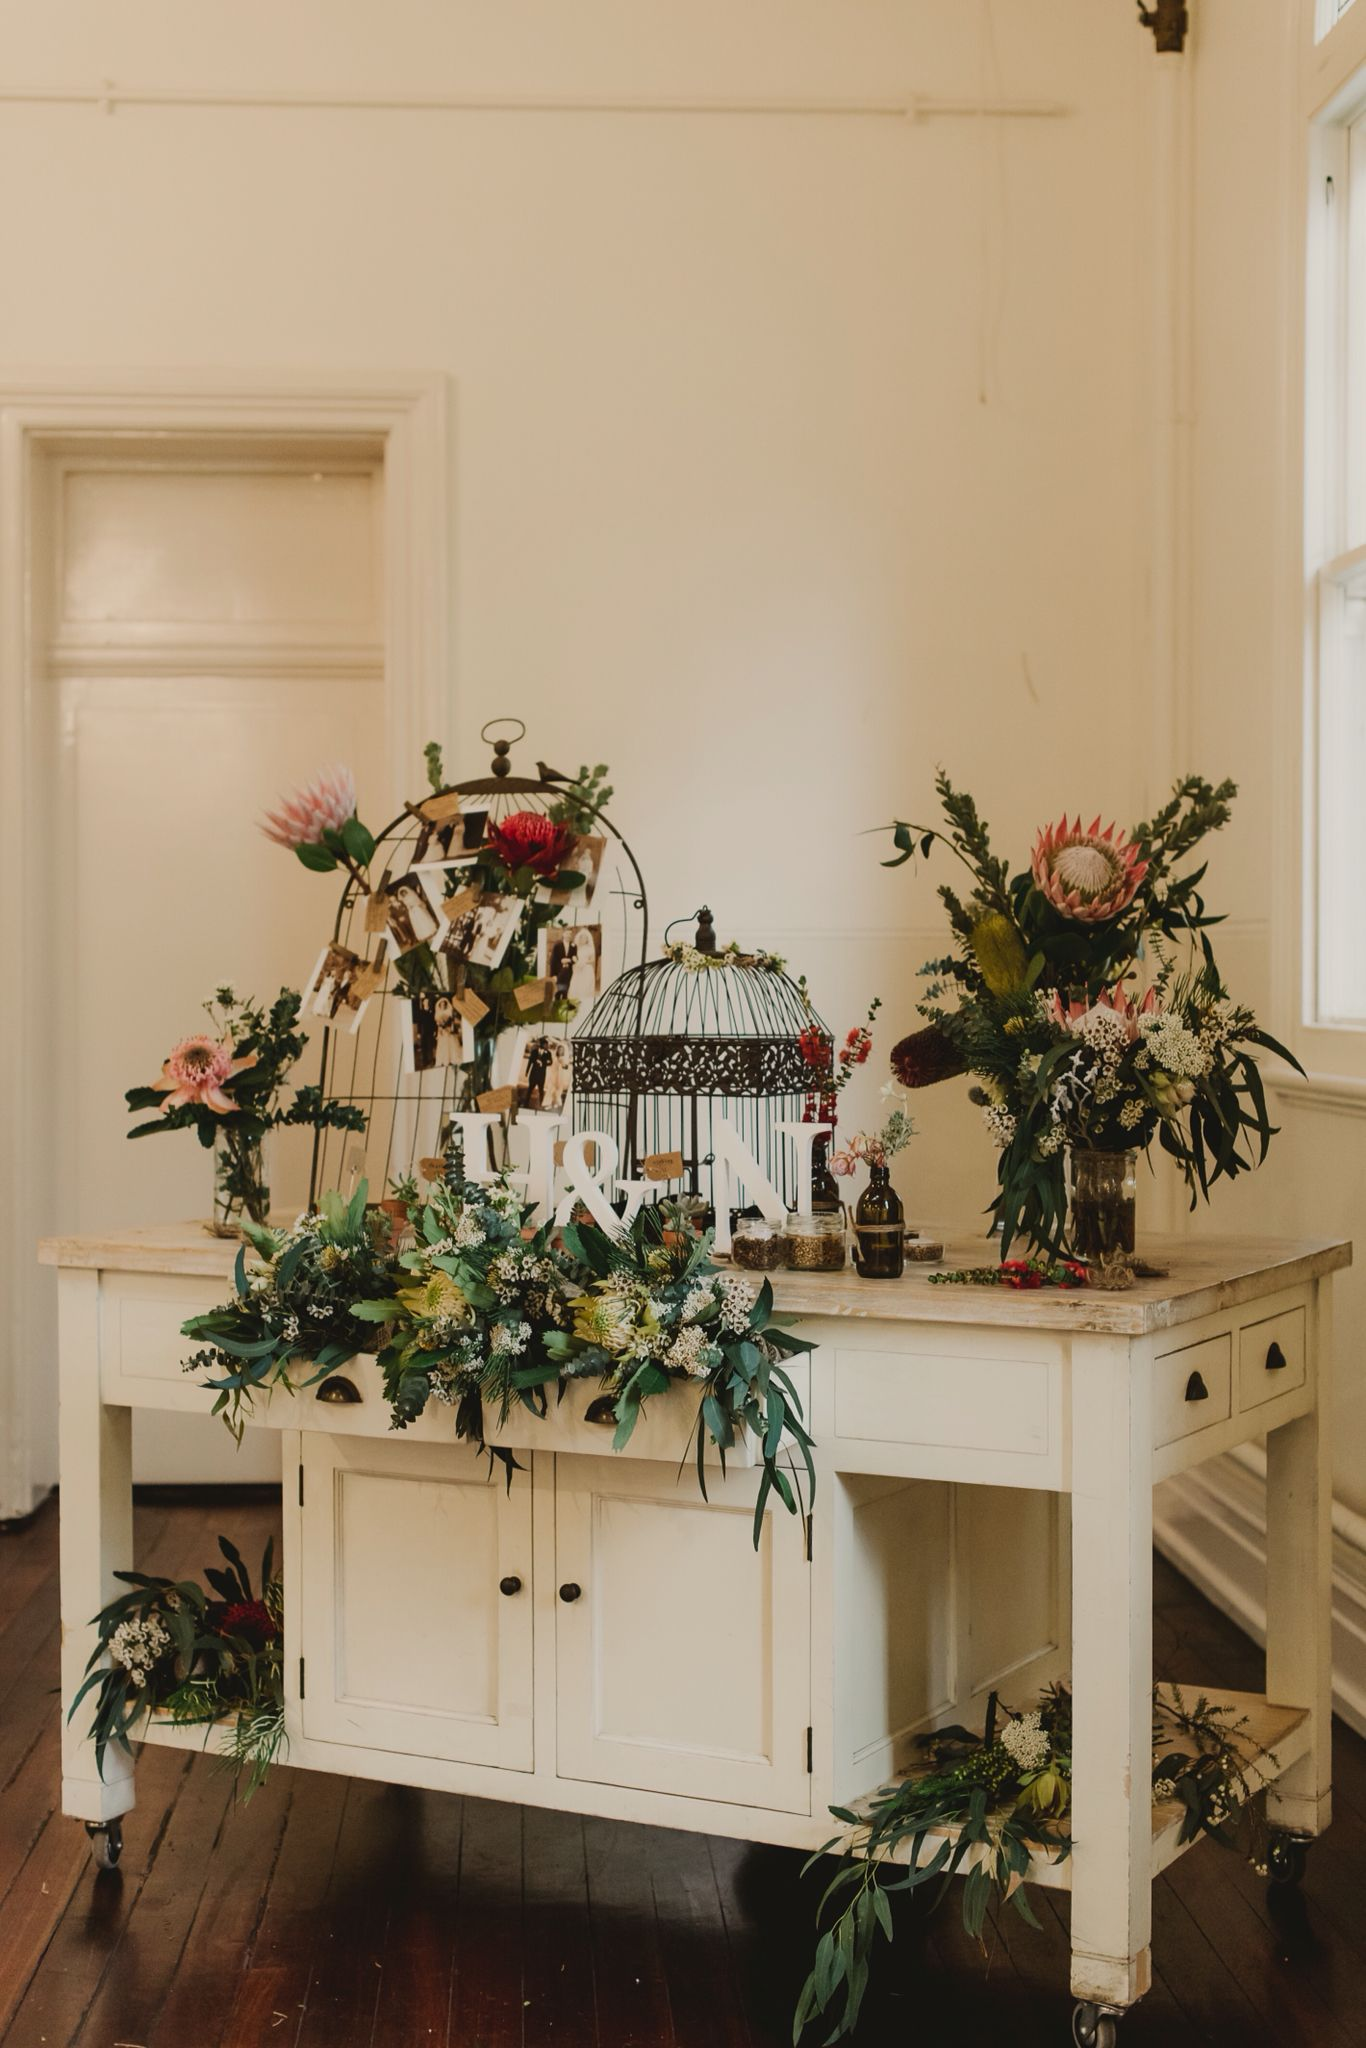 Reception venue, gift table, wishing well, bird cage